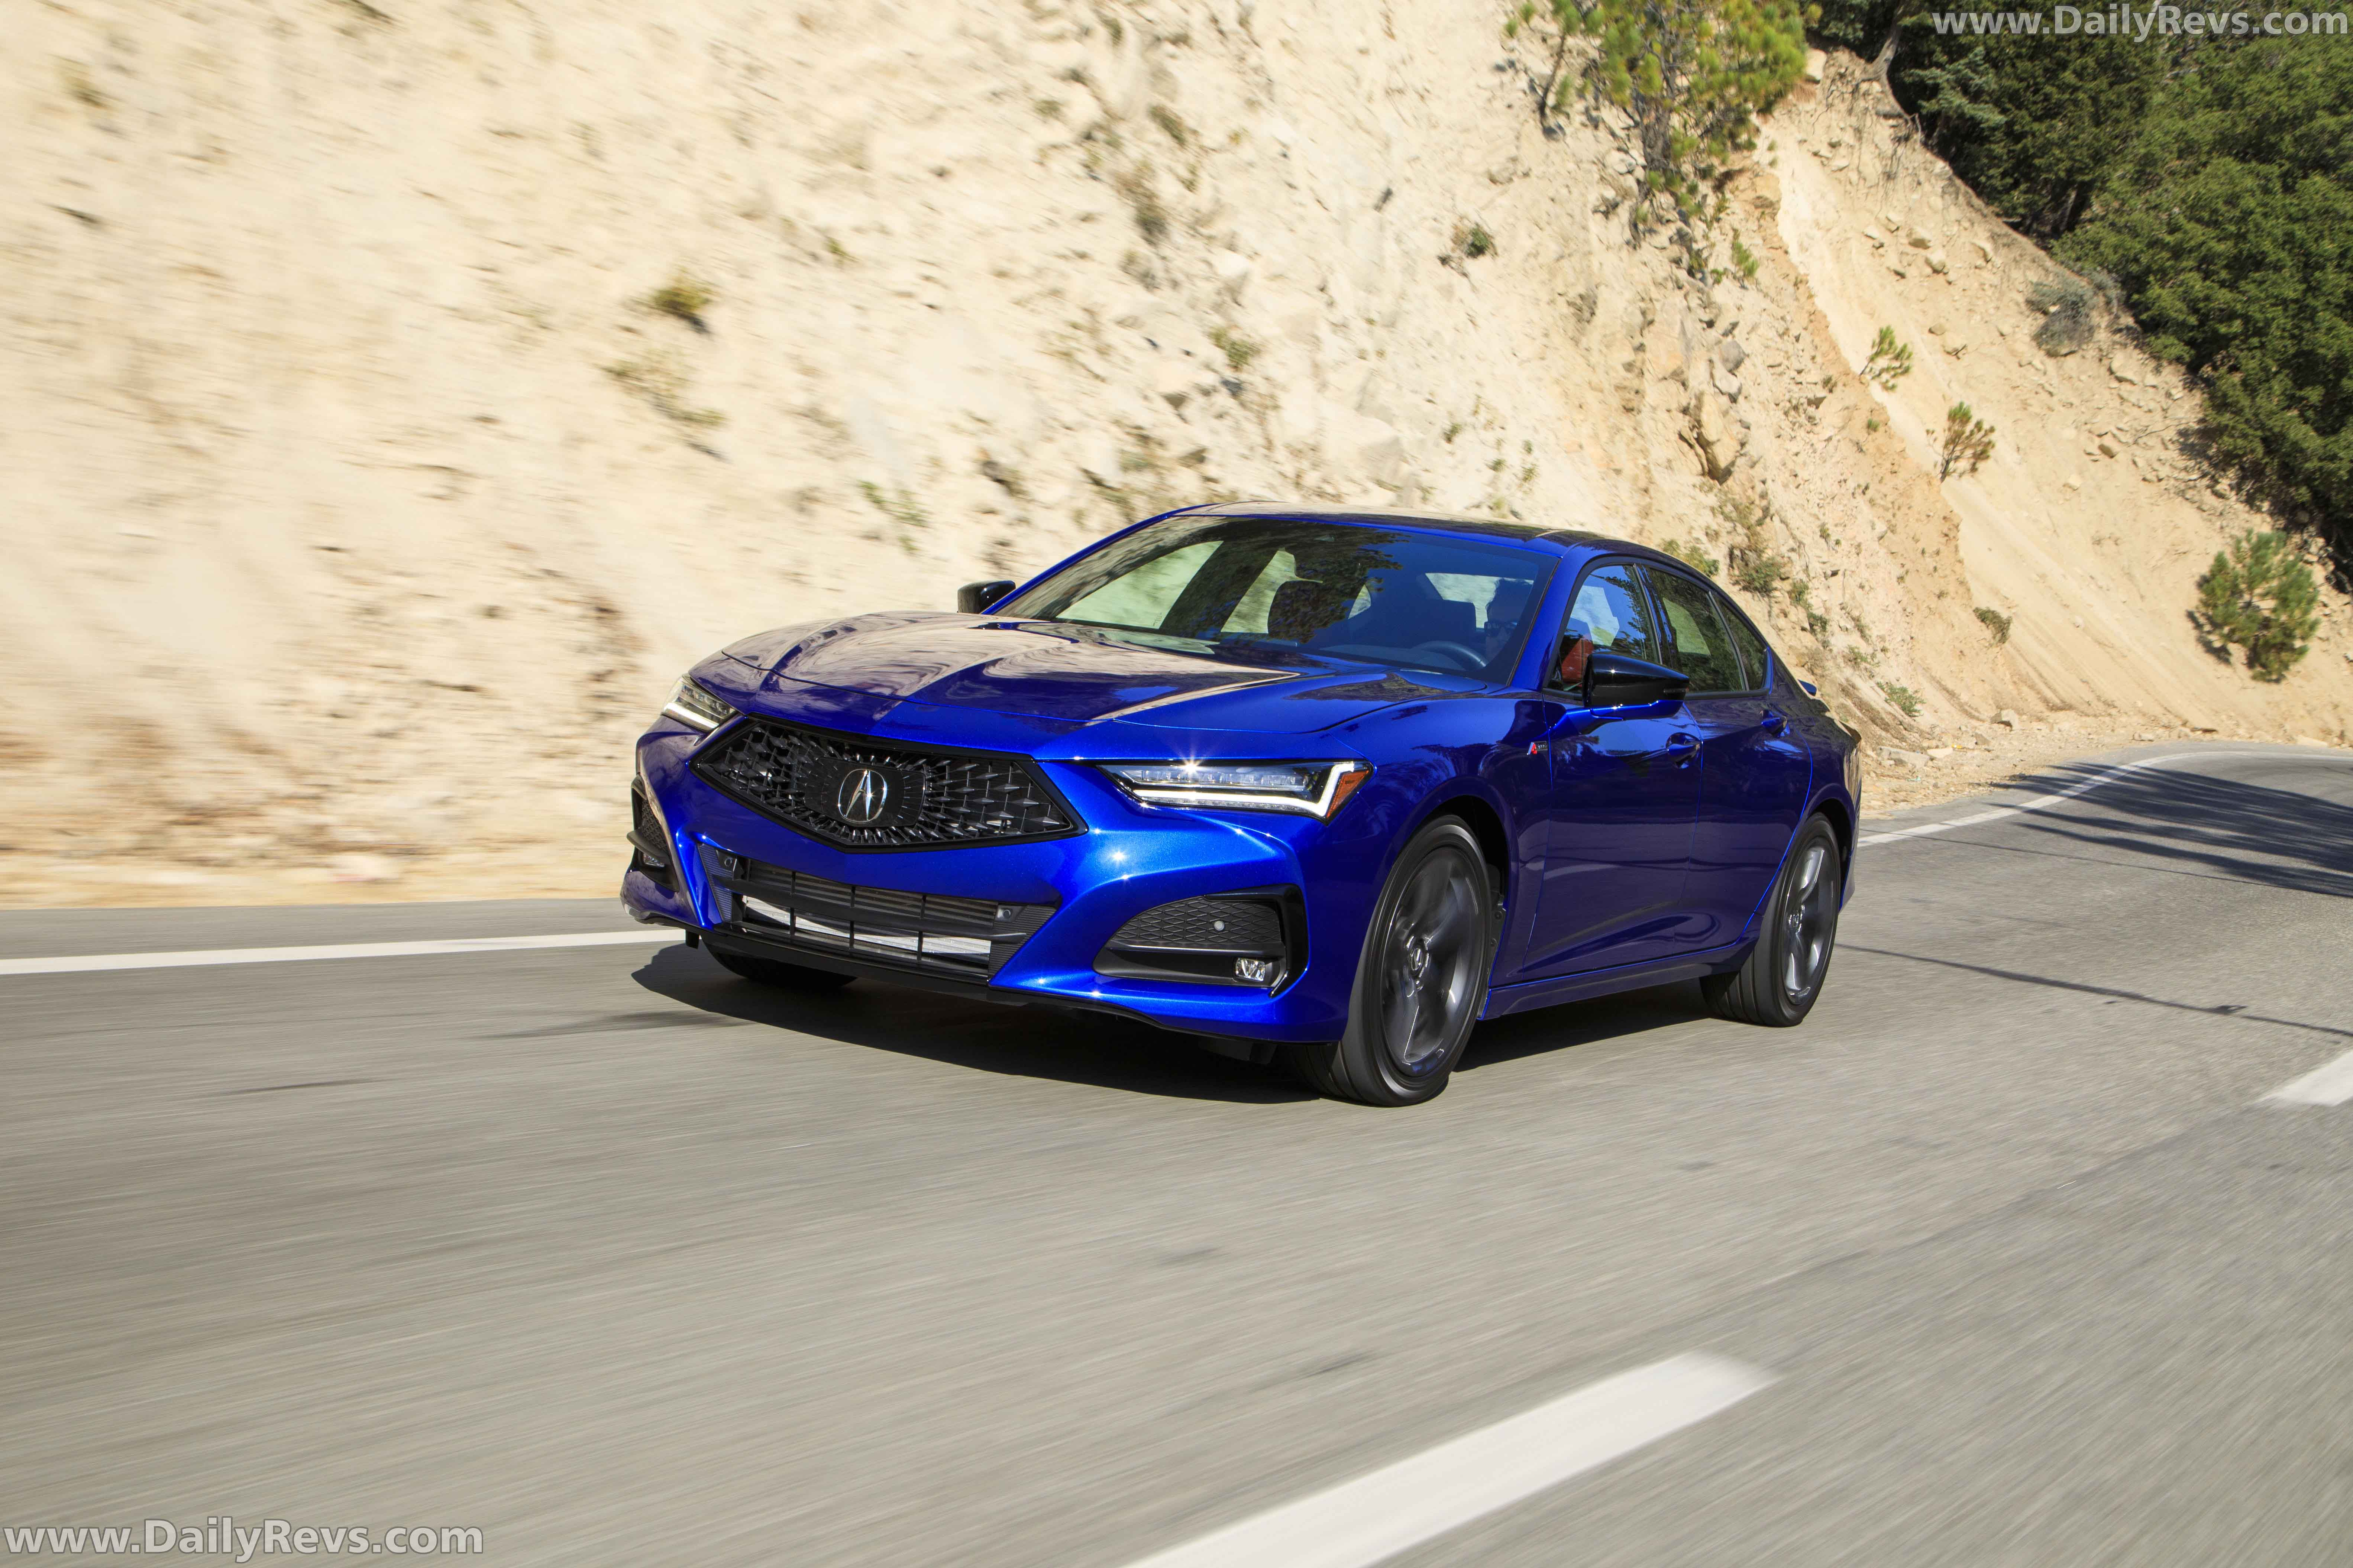 2021 acura tlx a-spec - dailyrevs